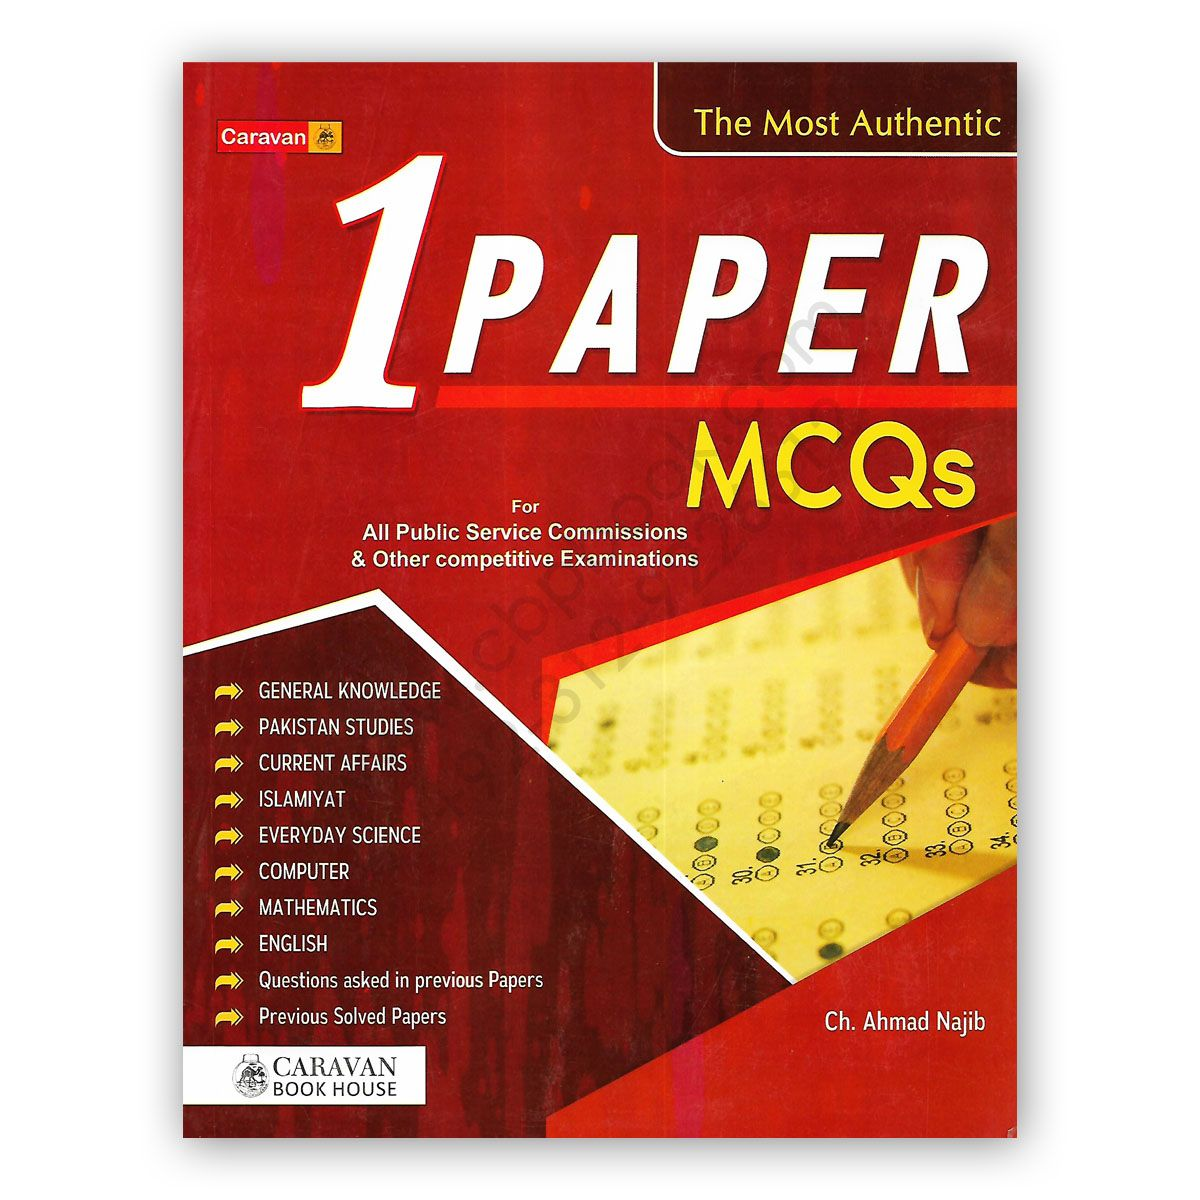 The Most Authentic One Paper Mcqs 2021 By Ch Ahmed Najib Caravan Book Cbpbook Pakistan S Largest Online Book Store Free Ebooks Download Books Pdf Books Reading Free Pdf Books